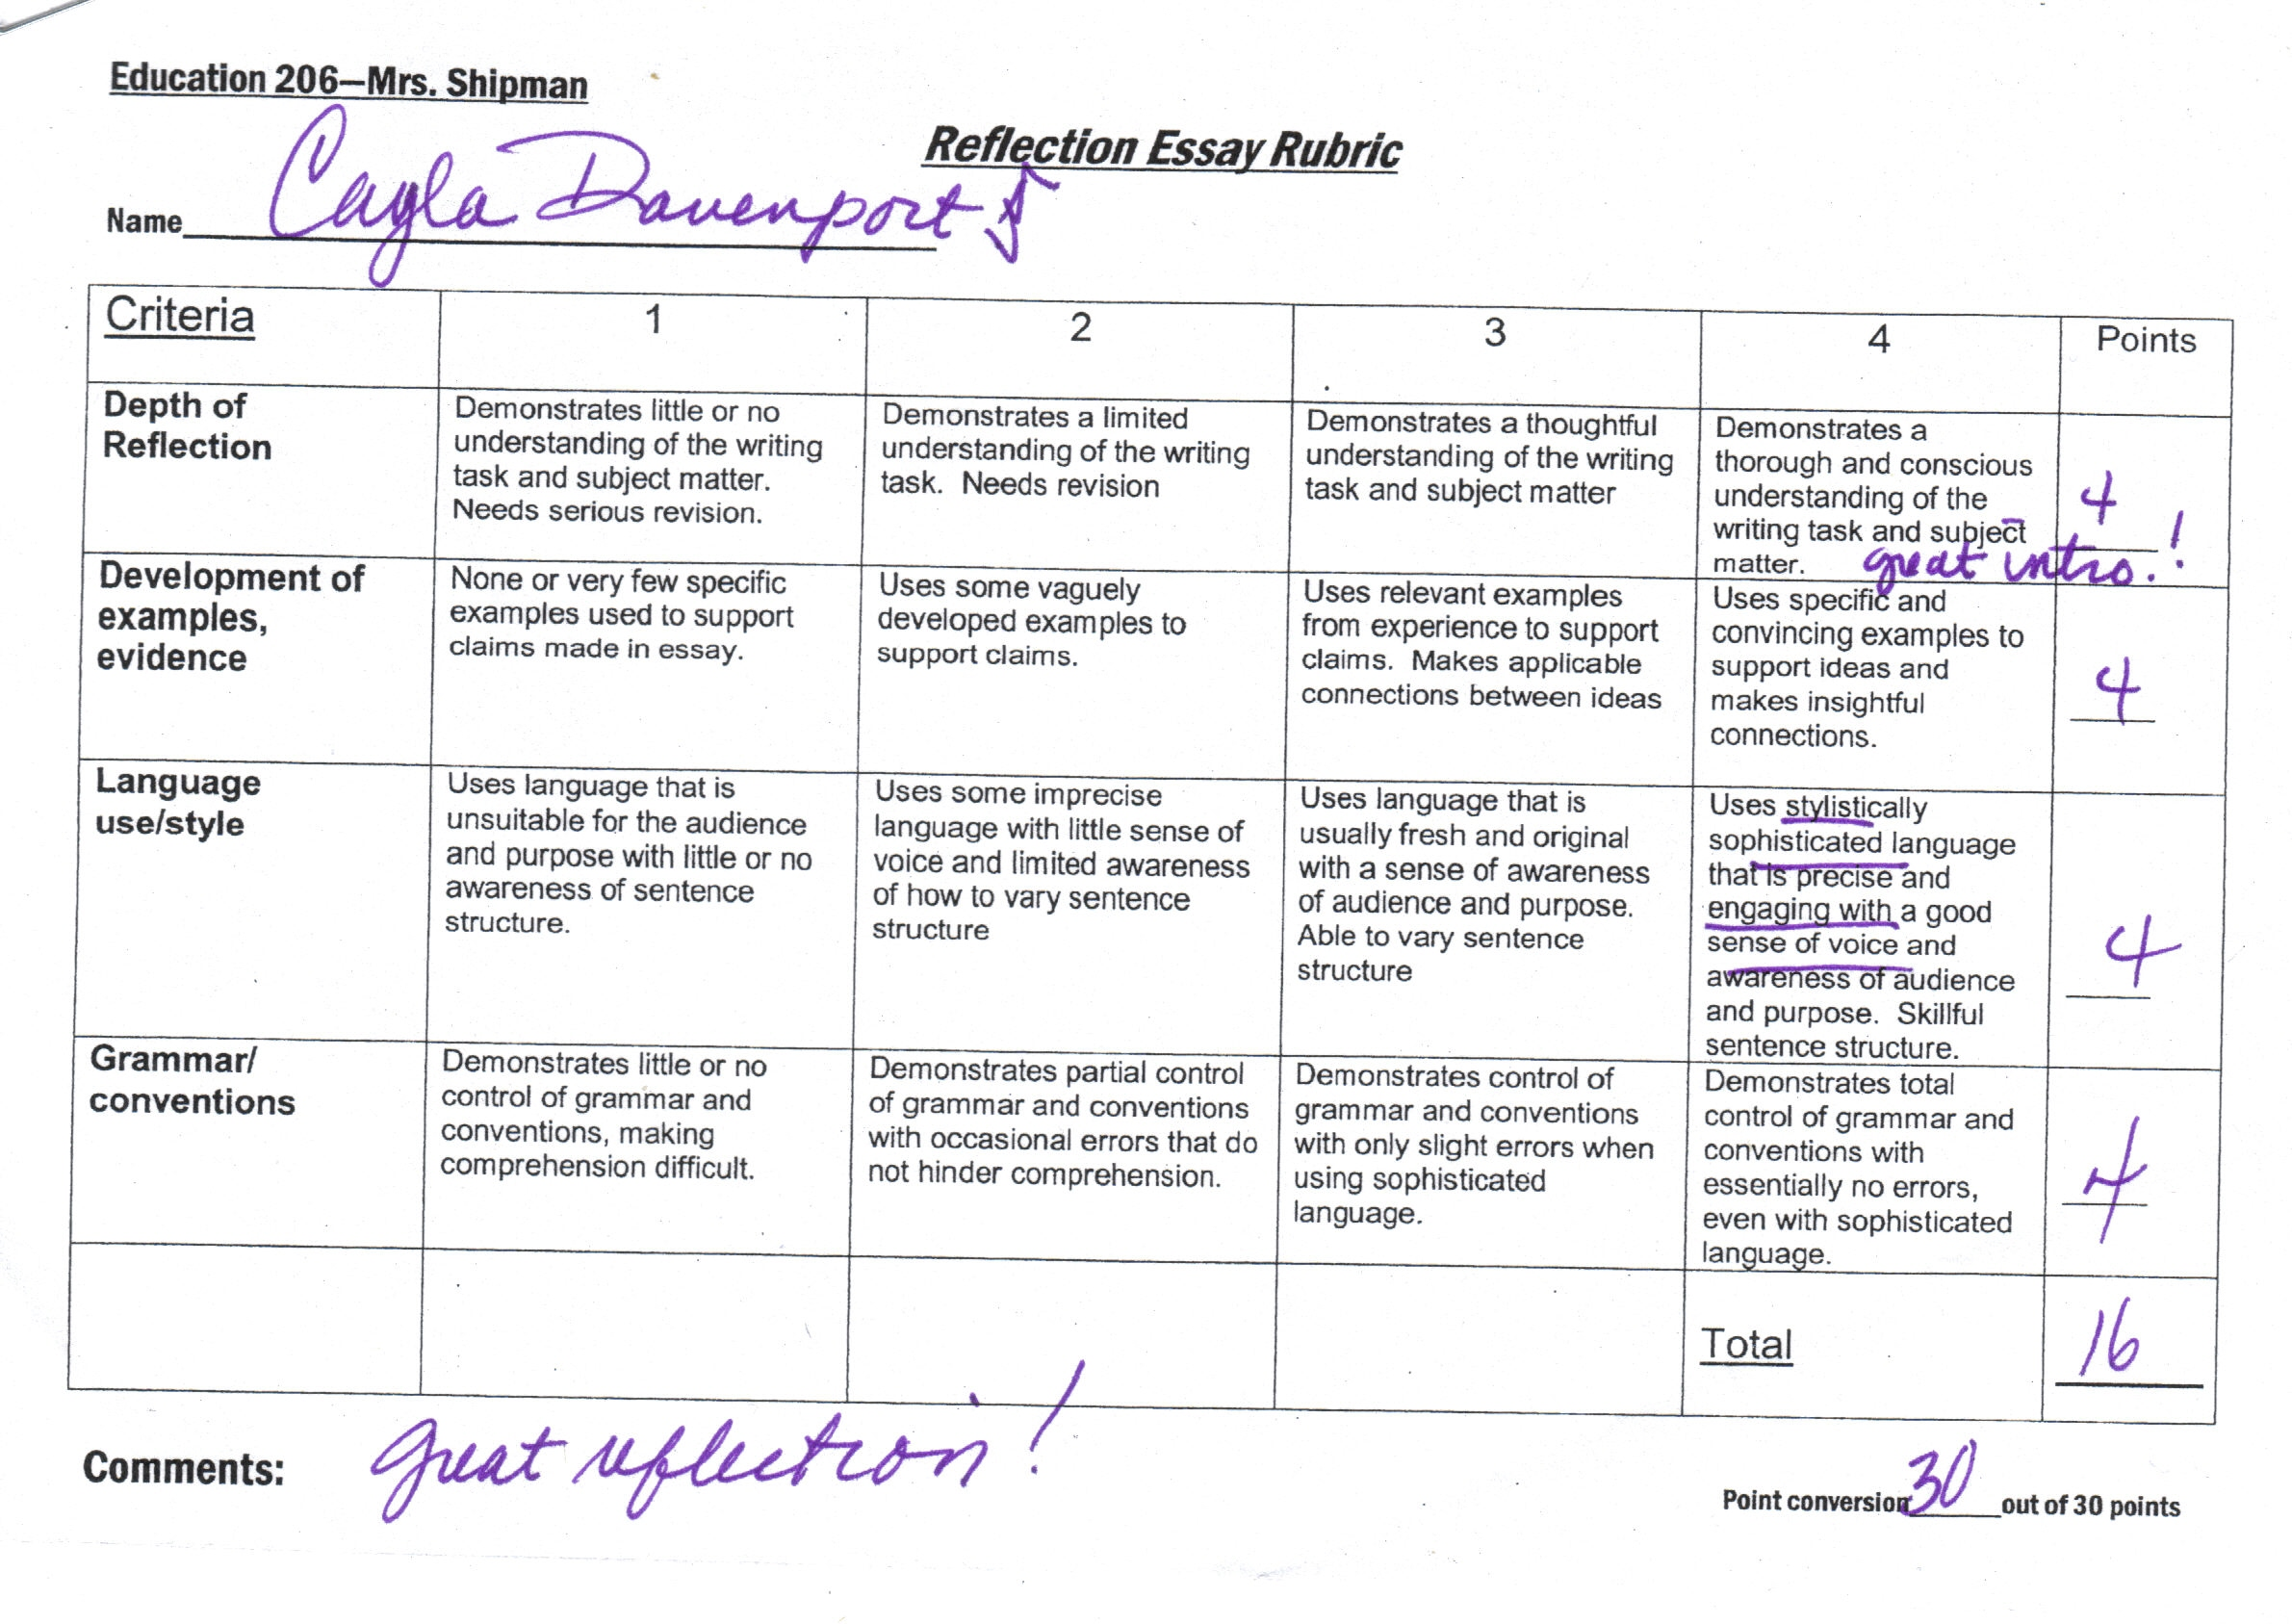 Writing A Personal Reflection Essay Rubric